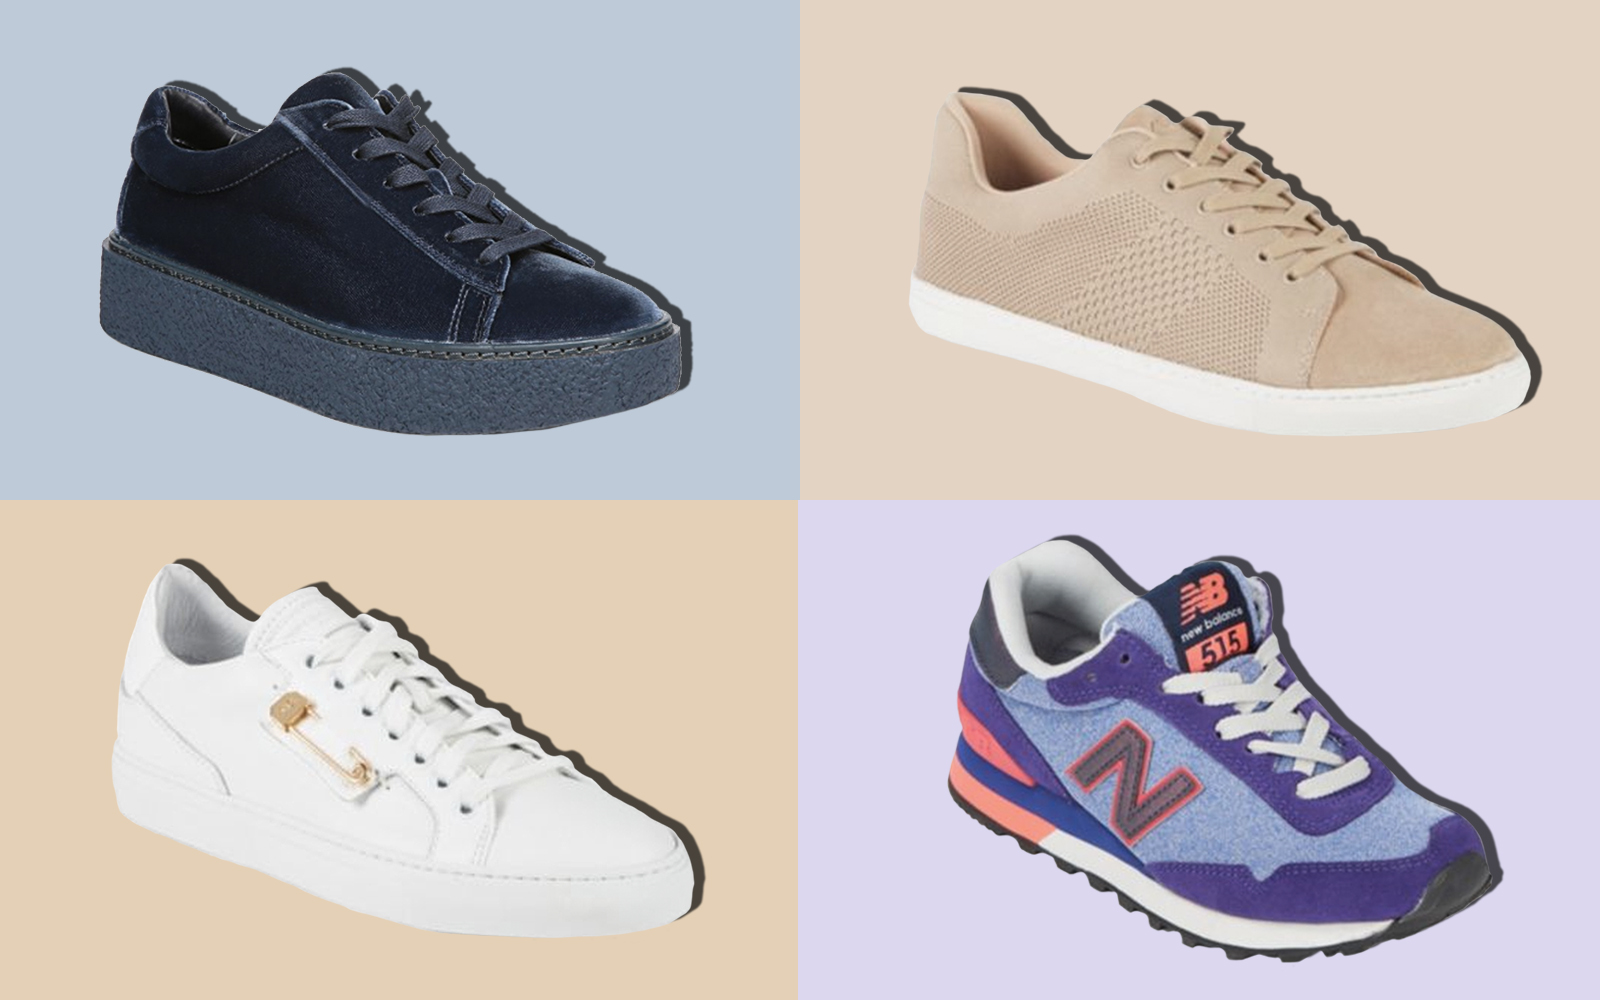 Best Sneakers on Sale at Saks Off 5th